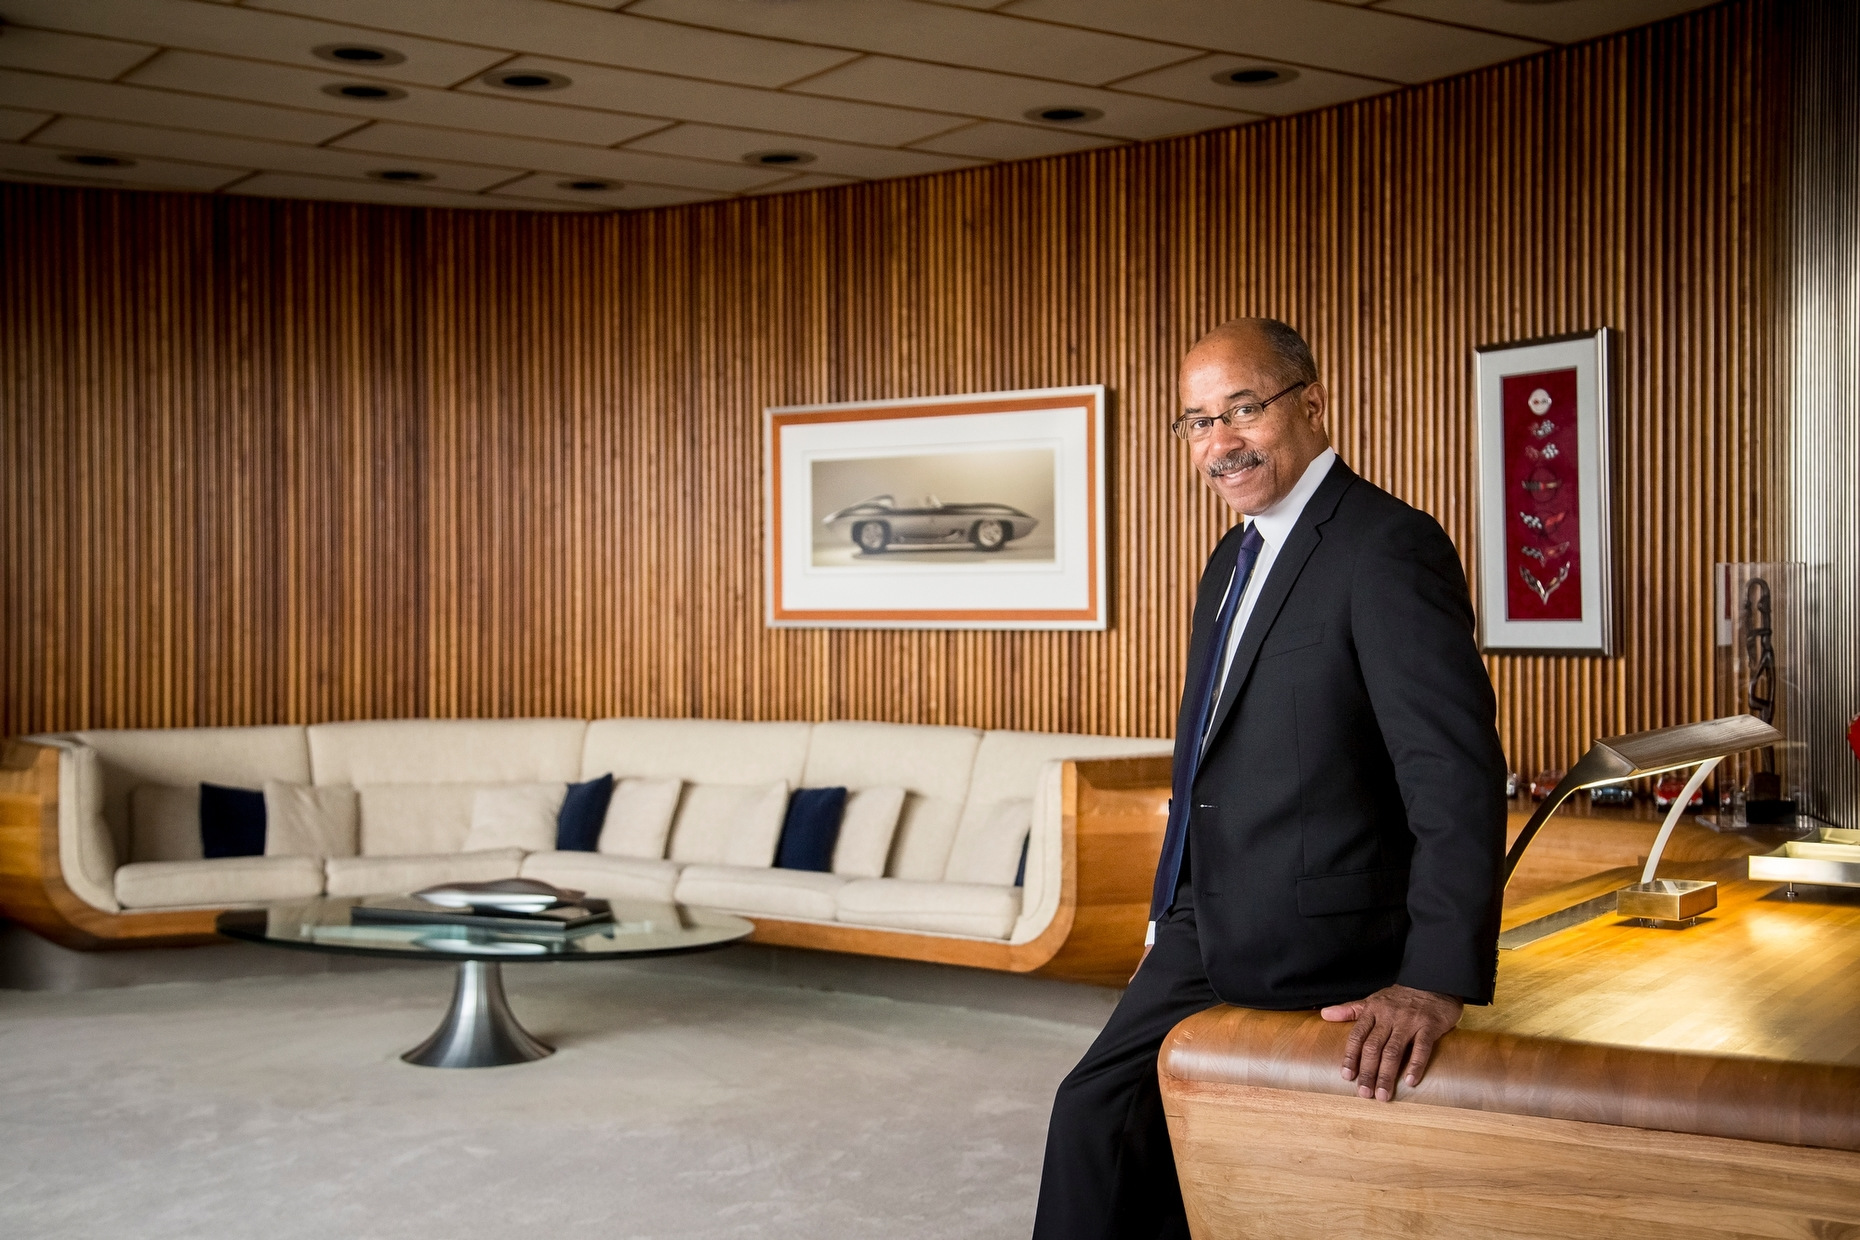 Detroit Portrait Photographer Ed Welburn, GM's vice president of global design